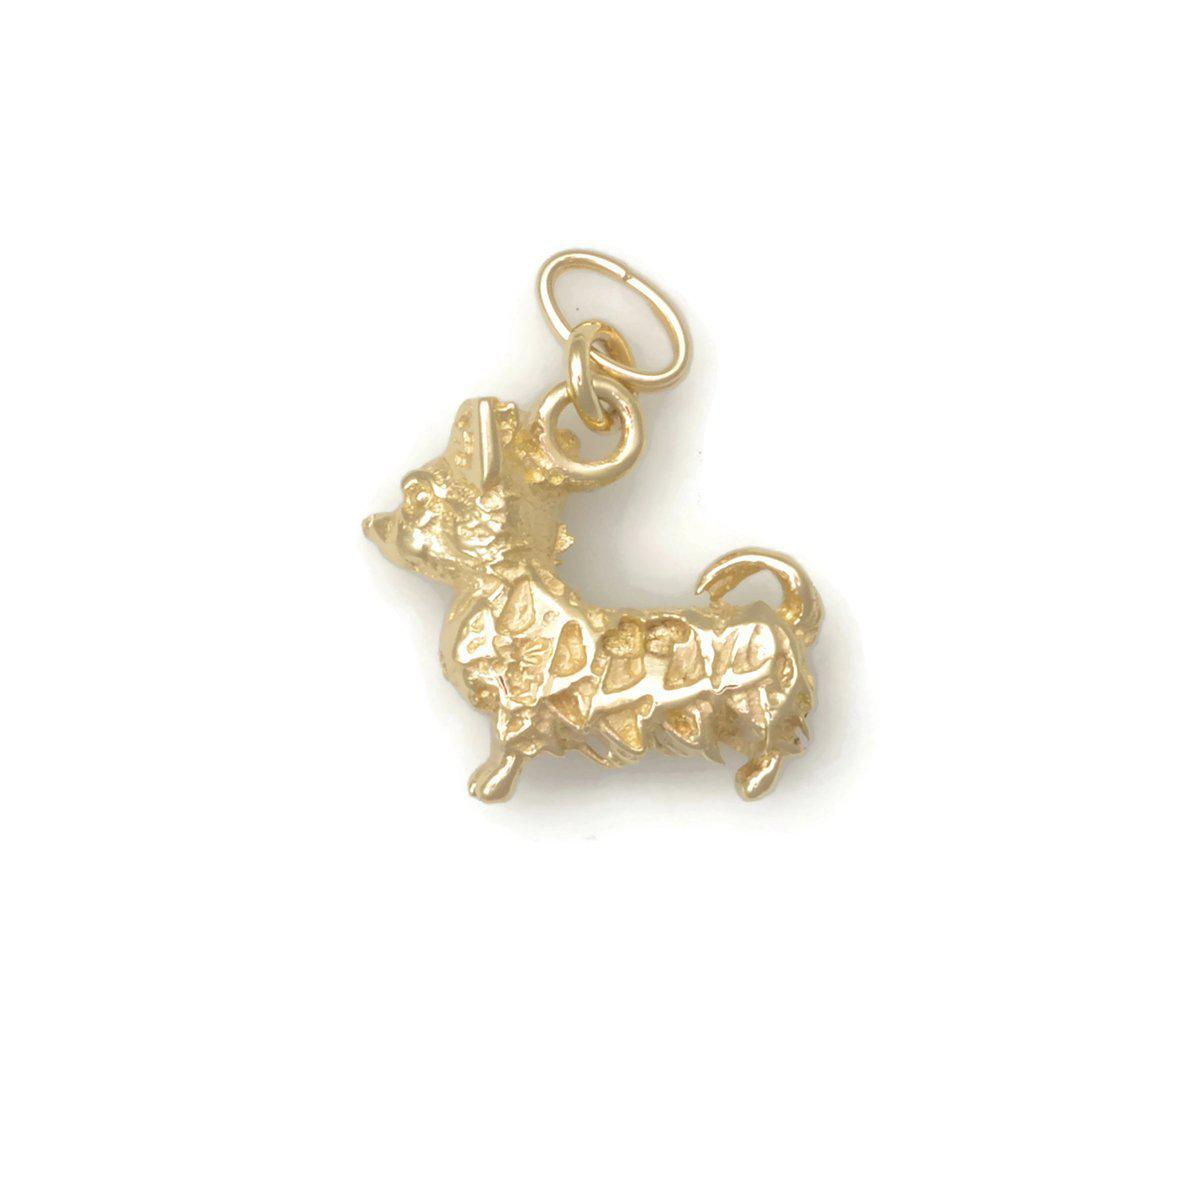 Donna Pizarro Designs 14kt Yellow Gold Chihuahua Charm